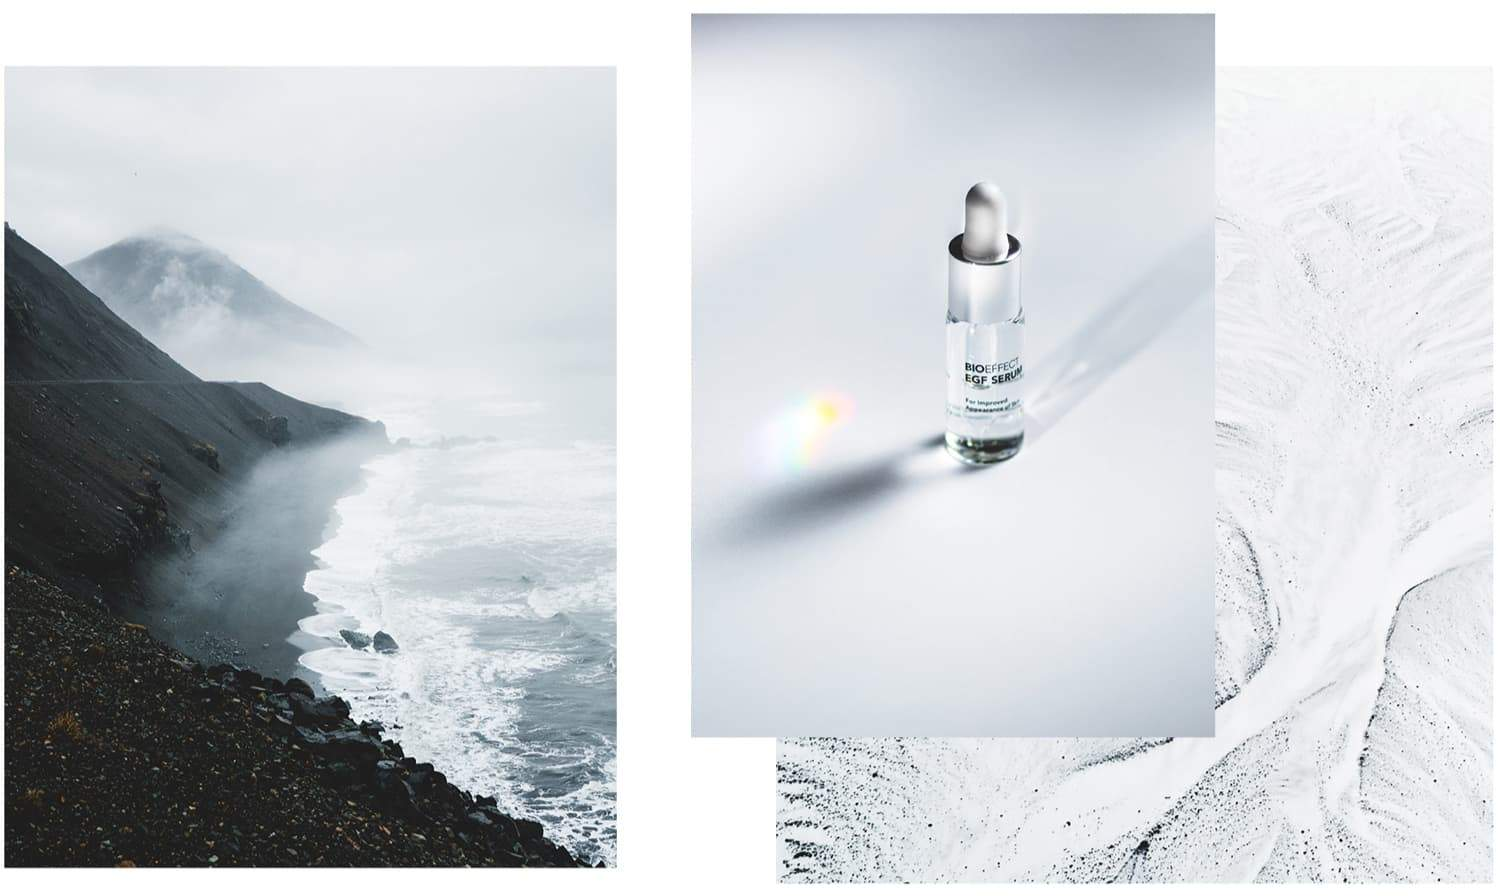 3 images arranged artfully. The image on the left is a birds-eye-view of a rocky coastline in foggy, overcast weather with mountains. A smaller image to the right features a bottle of BIOEFFECT pure skin care EGF Serum sitting on a white surface with natural light shining through. Behind this image is a minimal, all-white scene of natural, snowy landscape from high above.